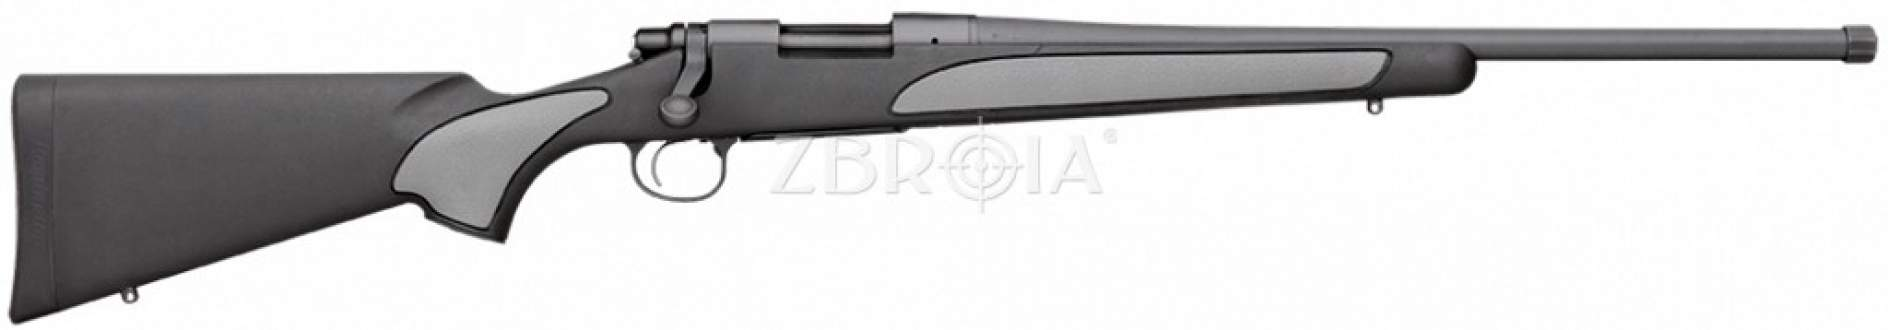 Карабин Remington 700 SPS THMZ кал. 308 Win